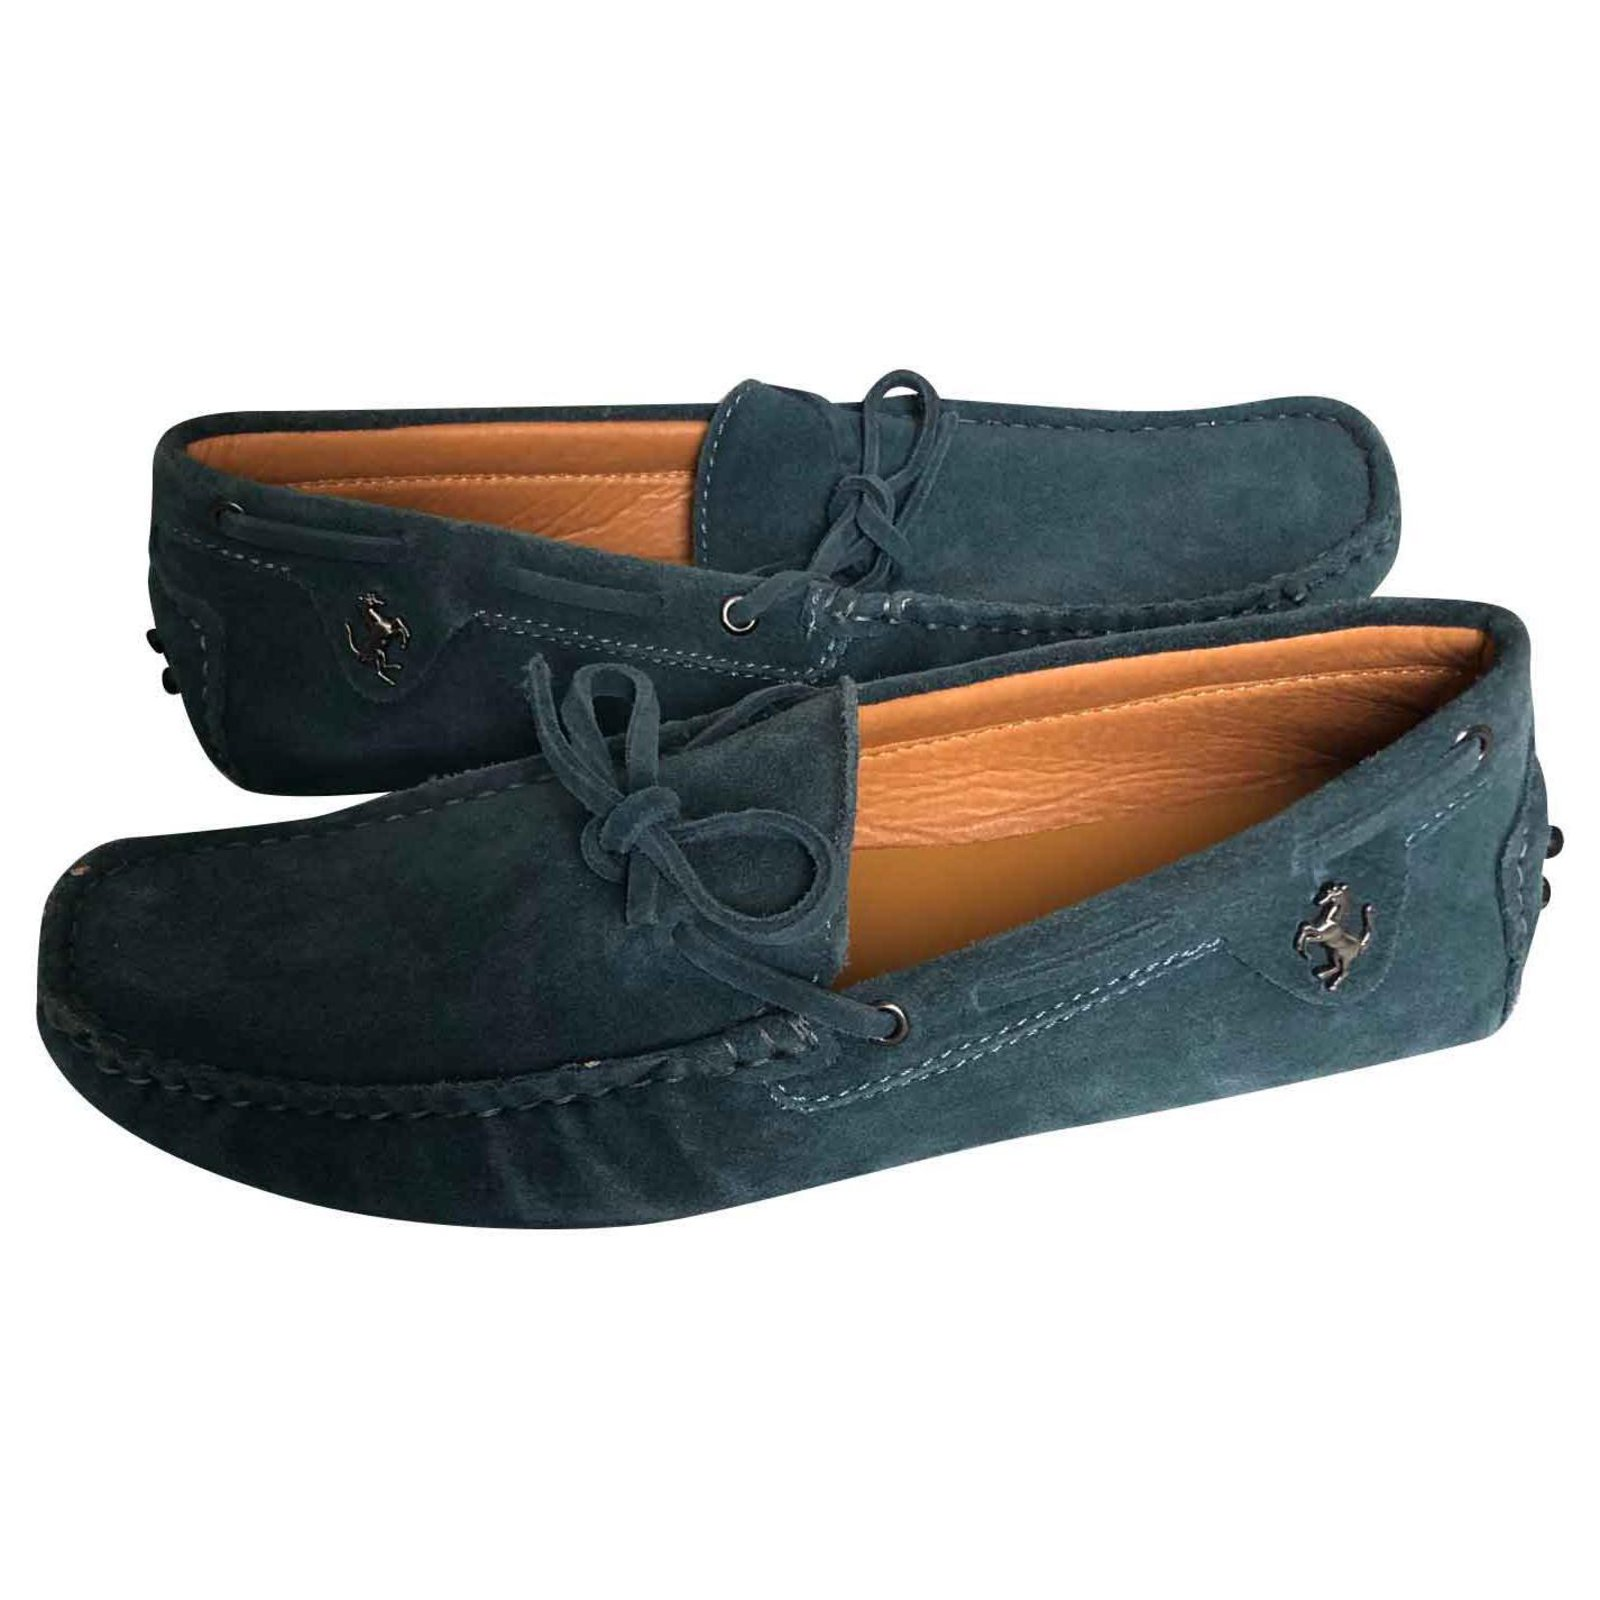 b762a9cdf904f Tod's Tod's Gommino Suede Driving Shoes Loafers Slip ons Suede Blue  ref.117299 - Joli Closet